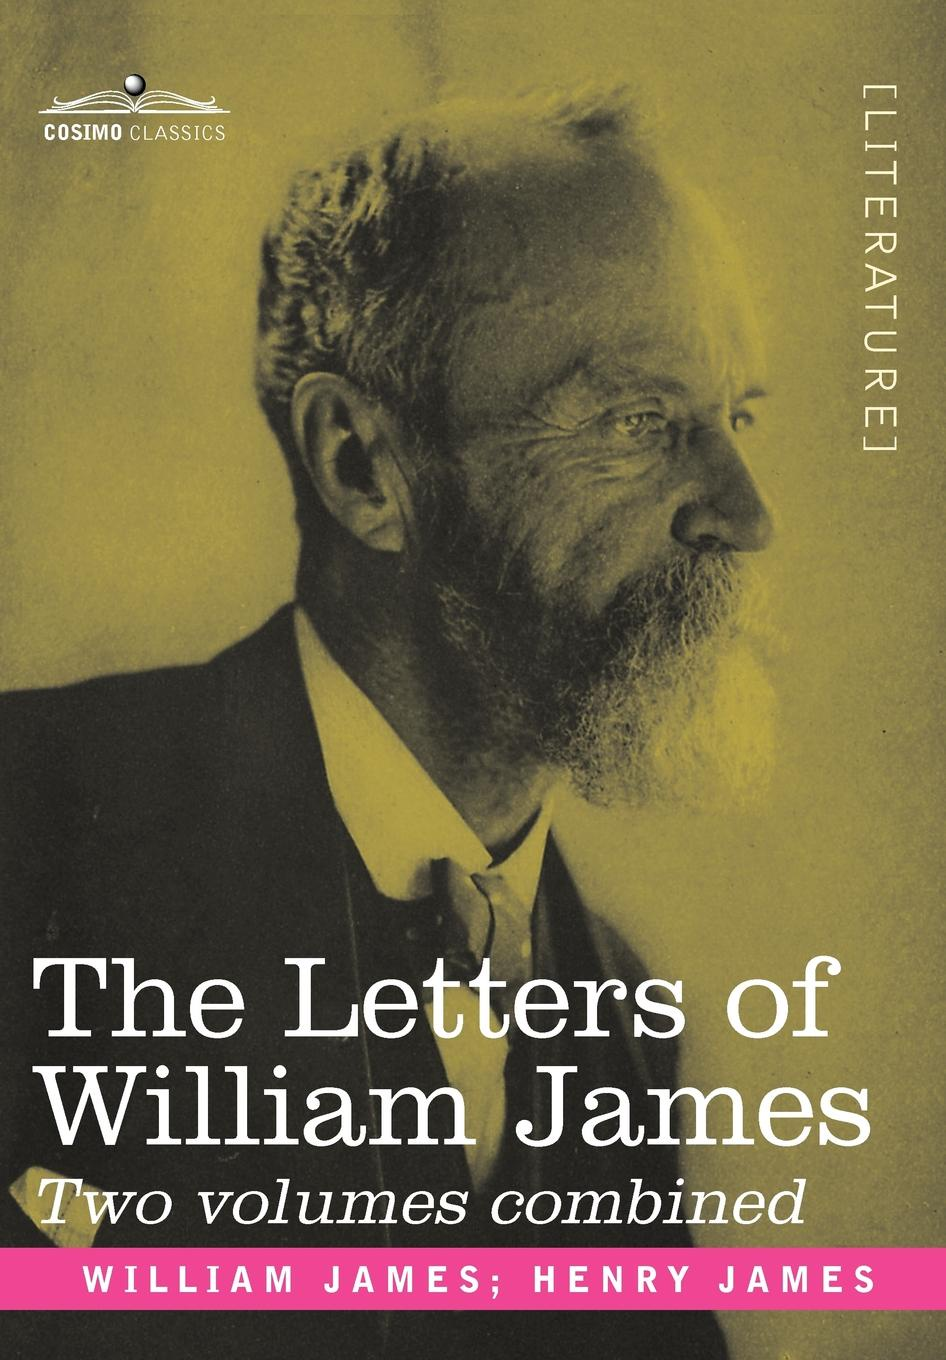 William James The Letters of William James. 2 Volumes Combined william james psychology the briefer course